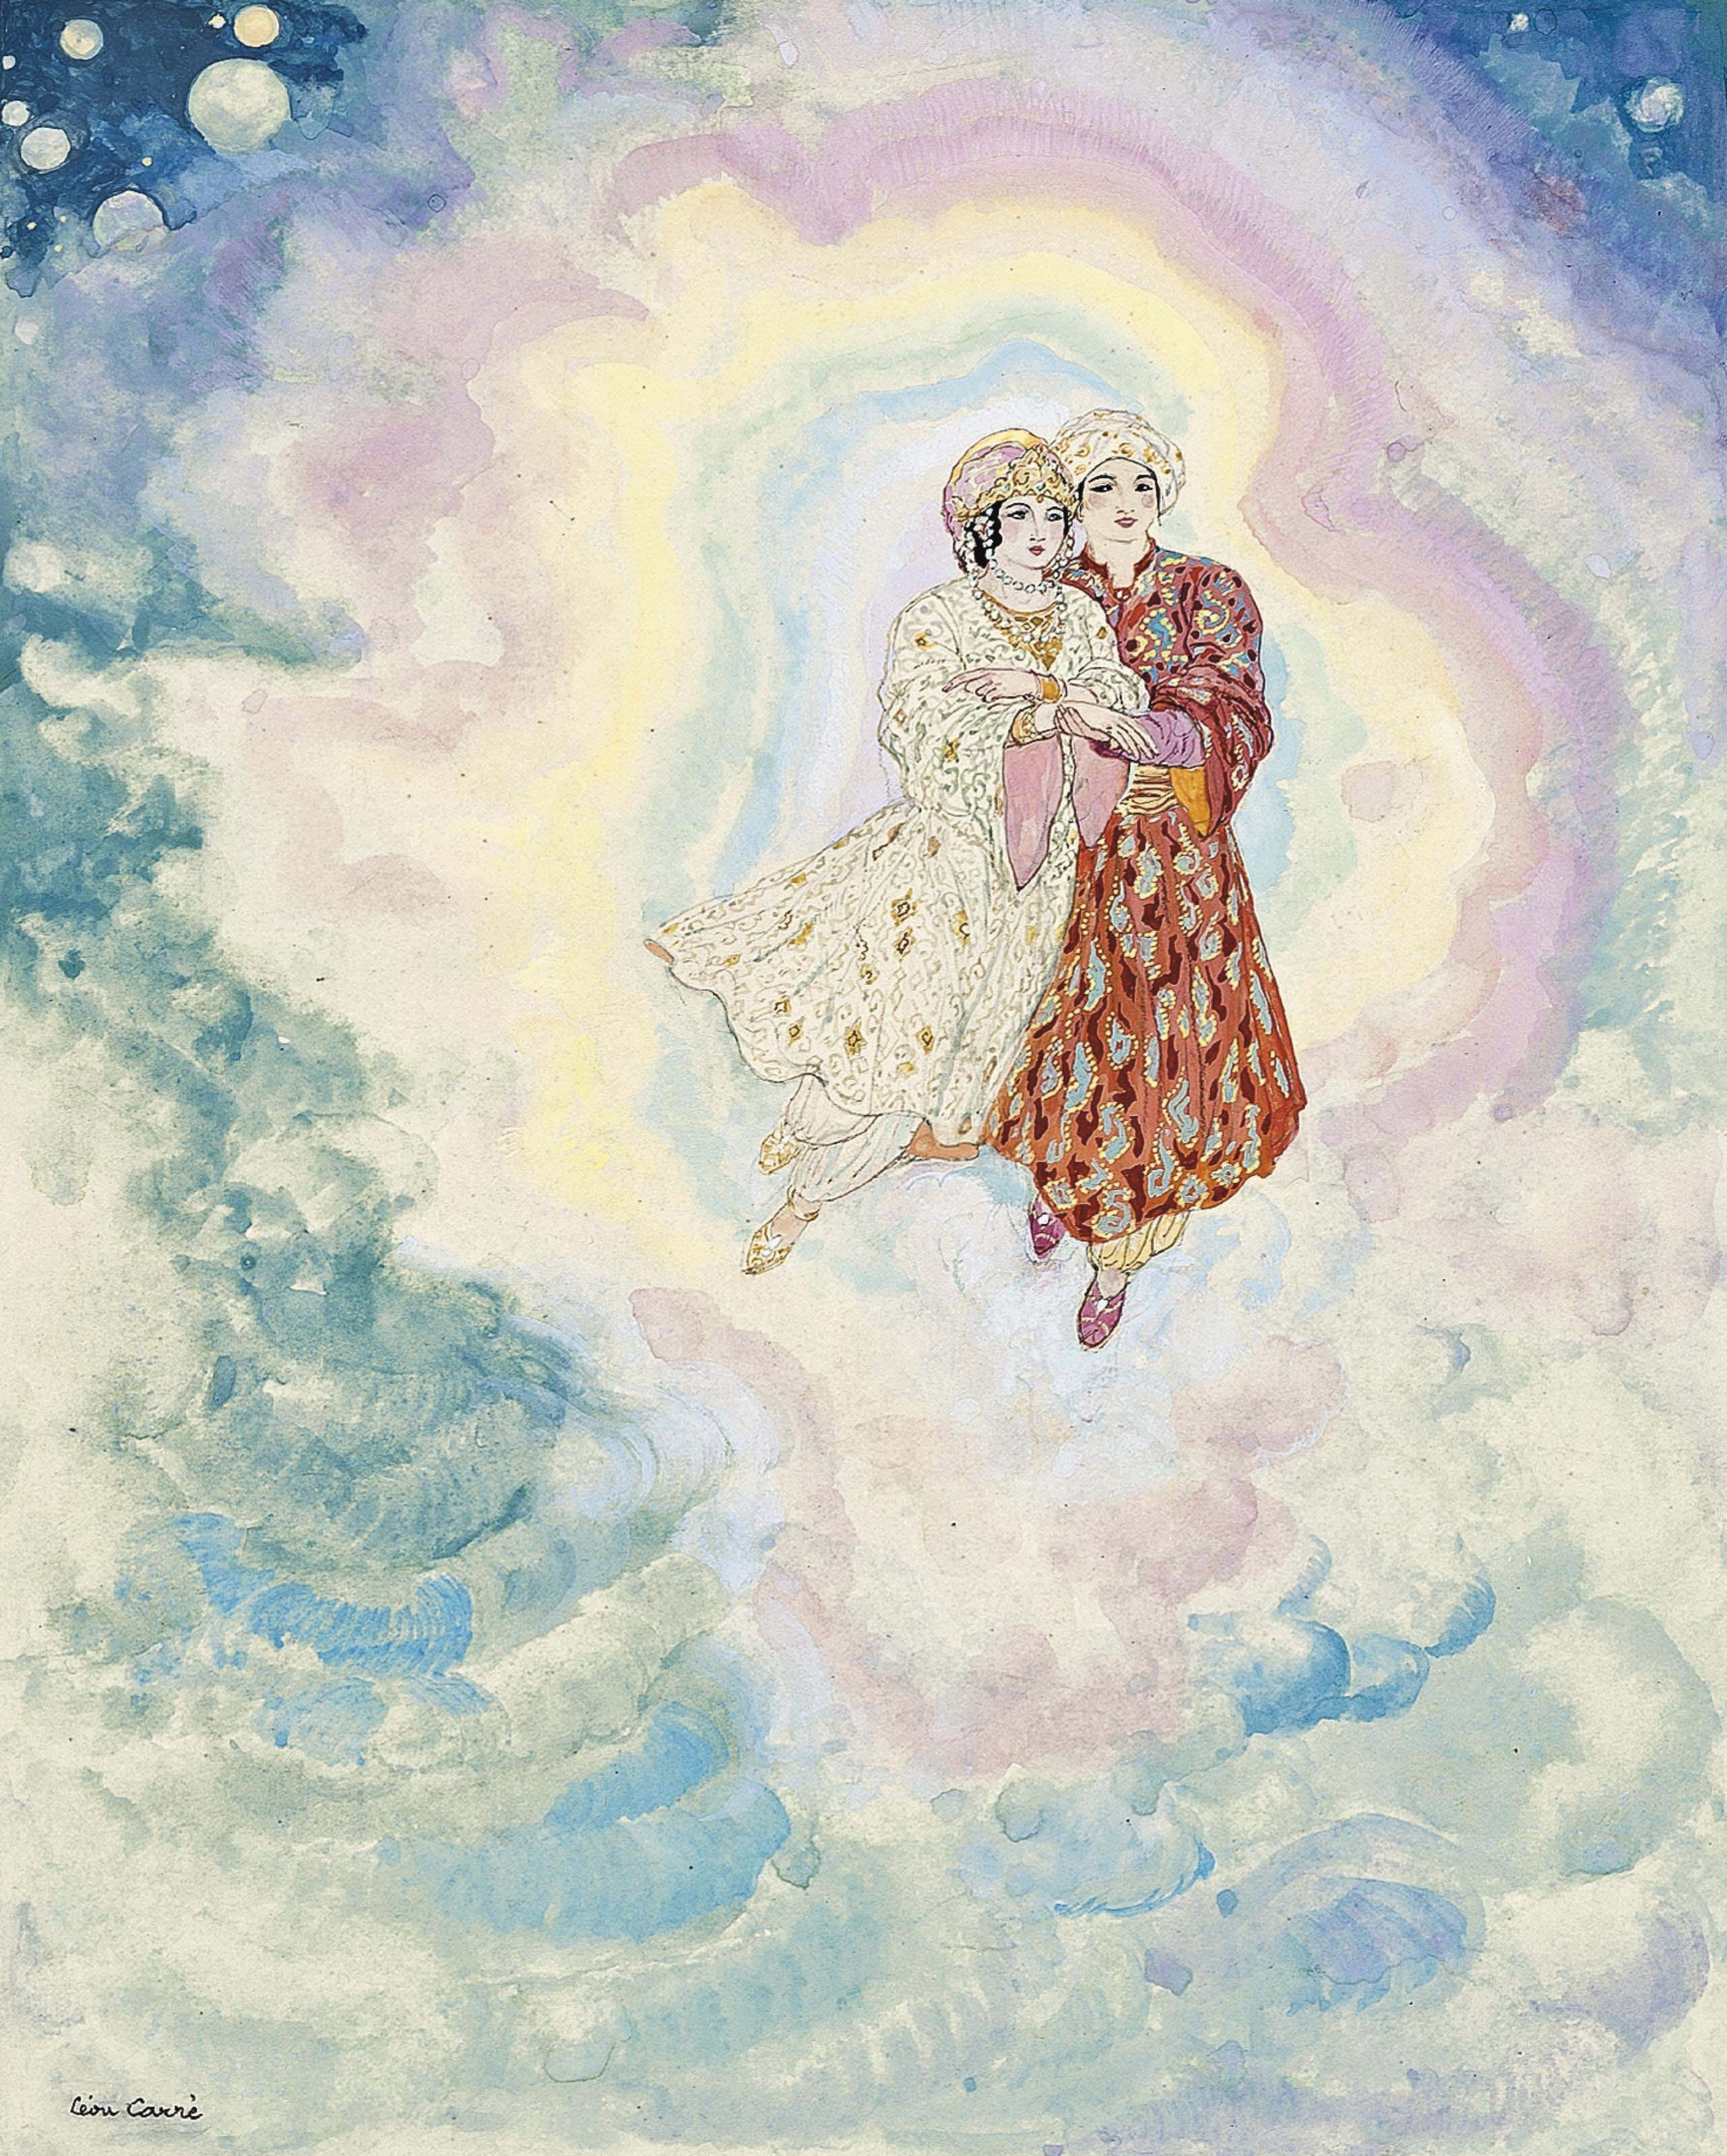 The two blessed lovers held hands, from 'The Story of Prince Jasmin and Princess Amande'